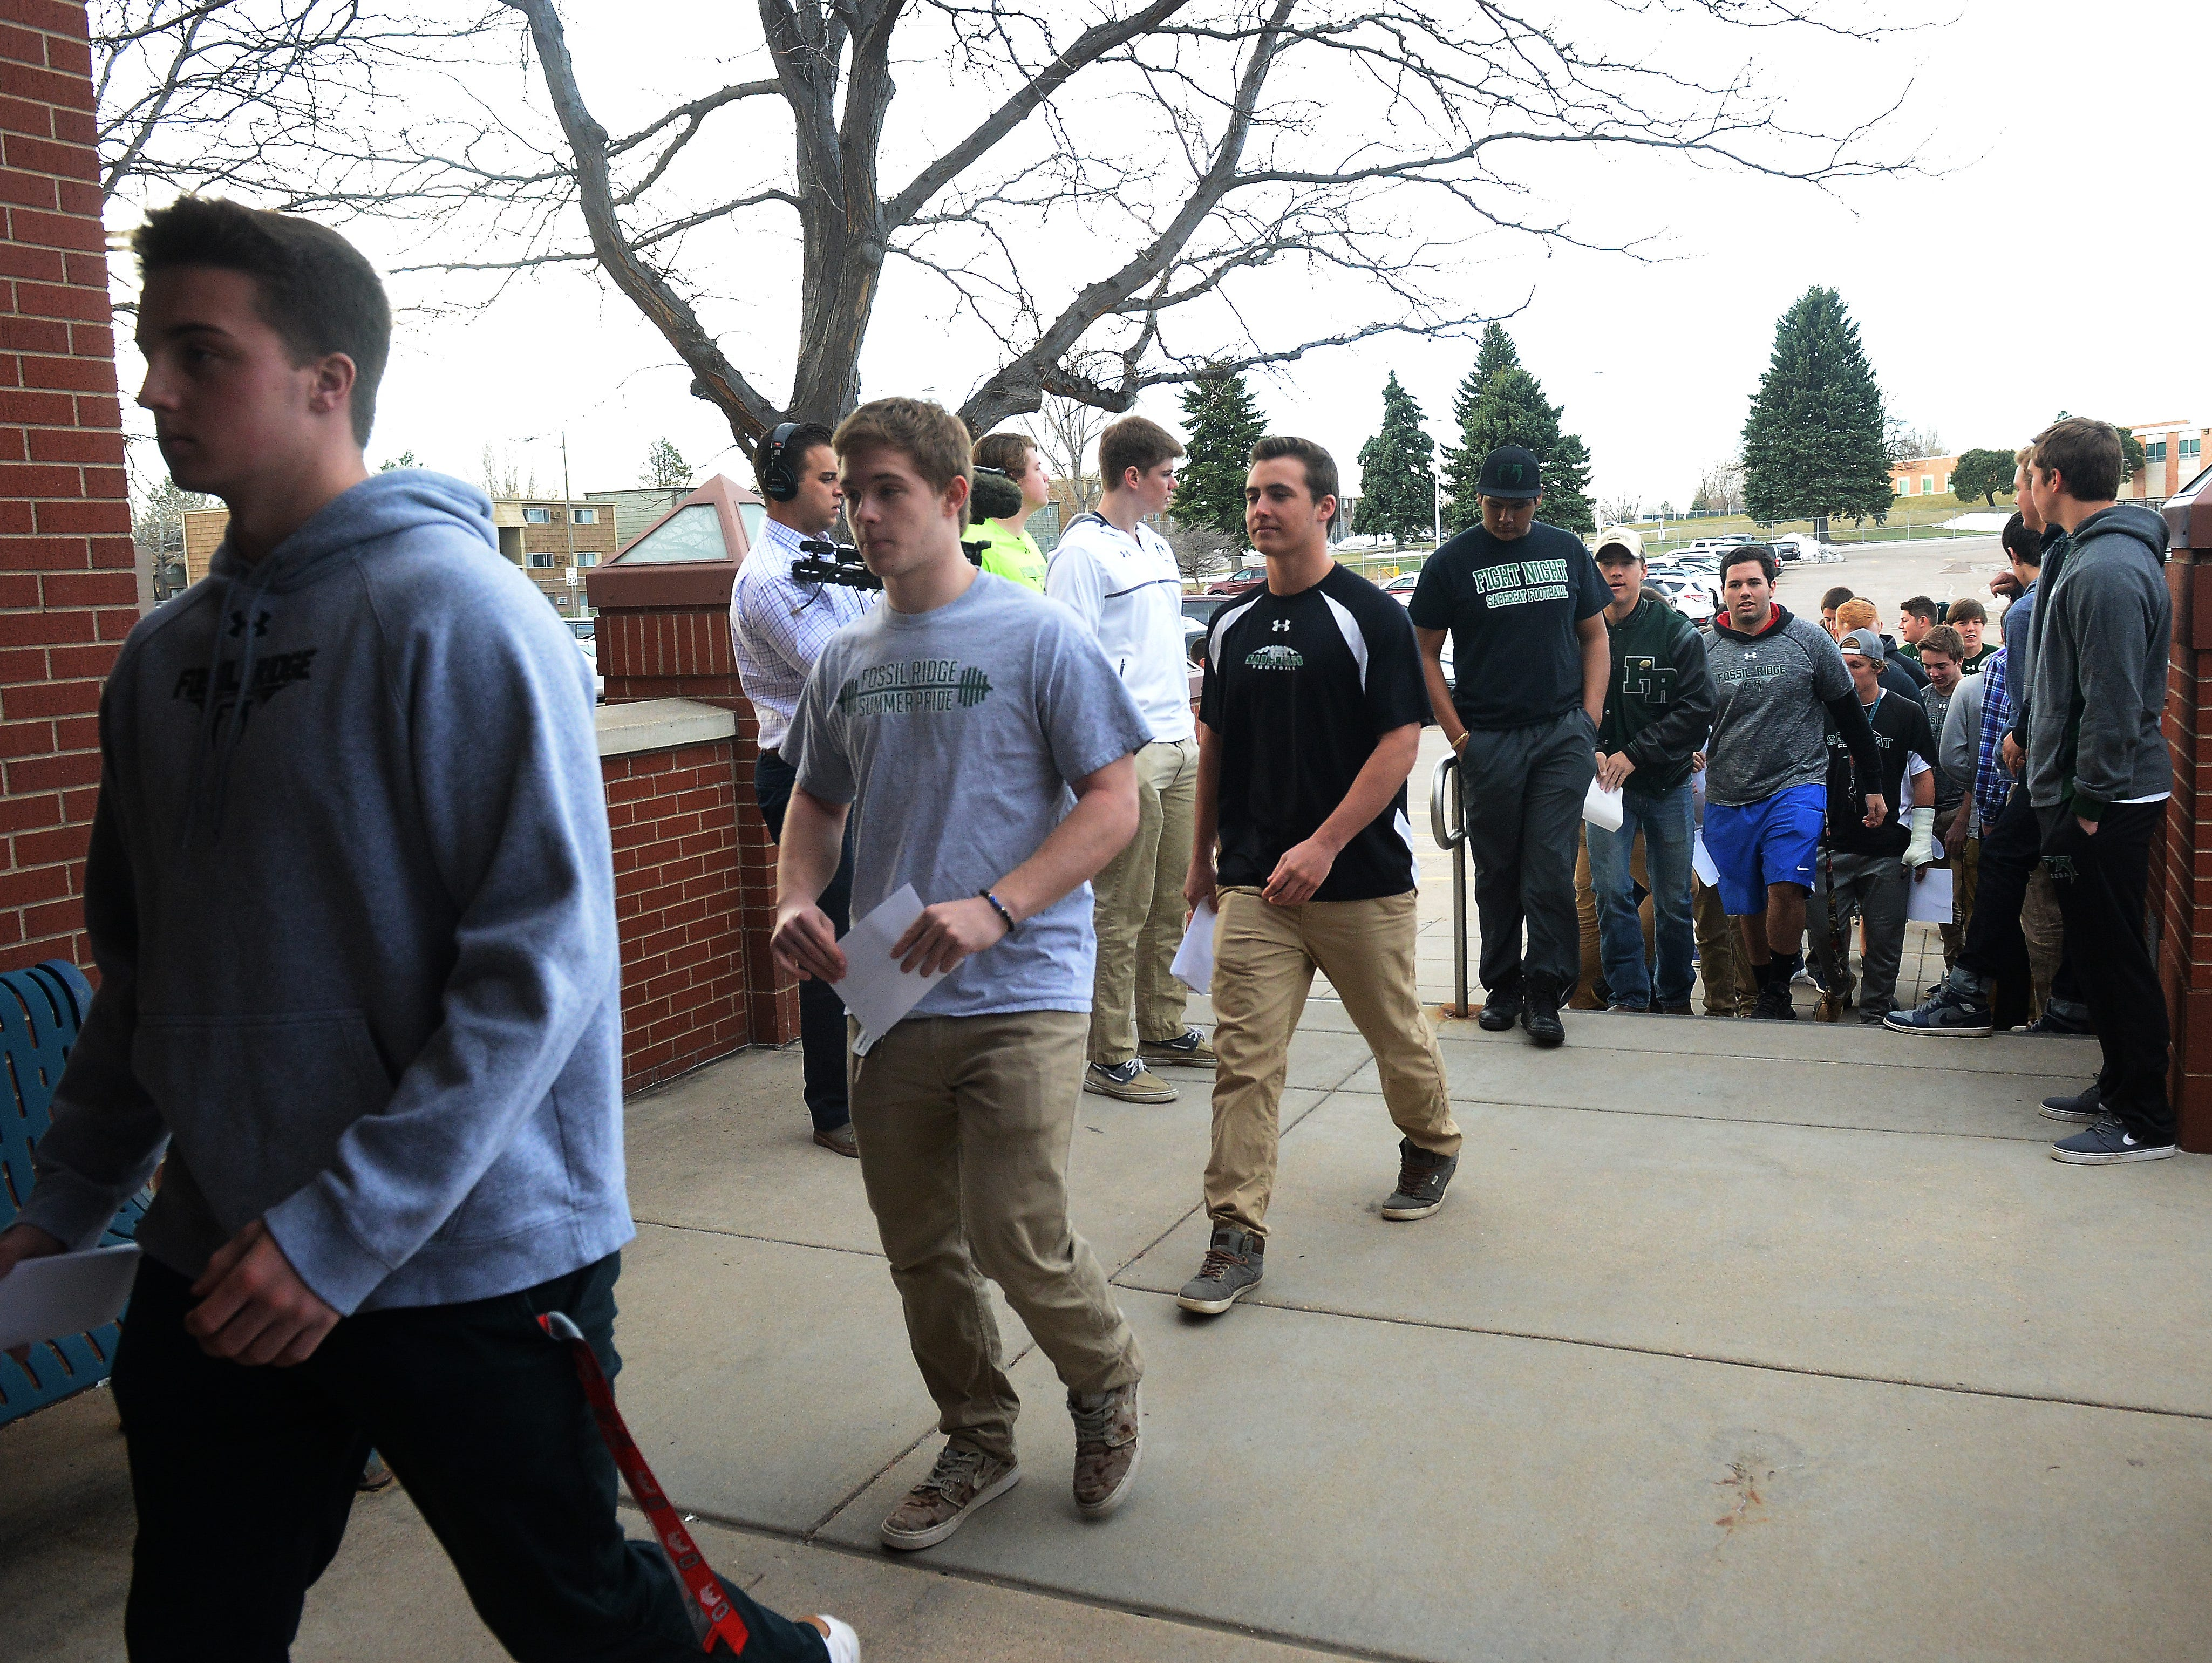 Fossil Ridge football players showed up at the PSD offices to protest the firing of coach Brian Tinker on Monday.